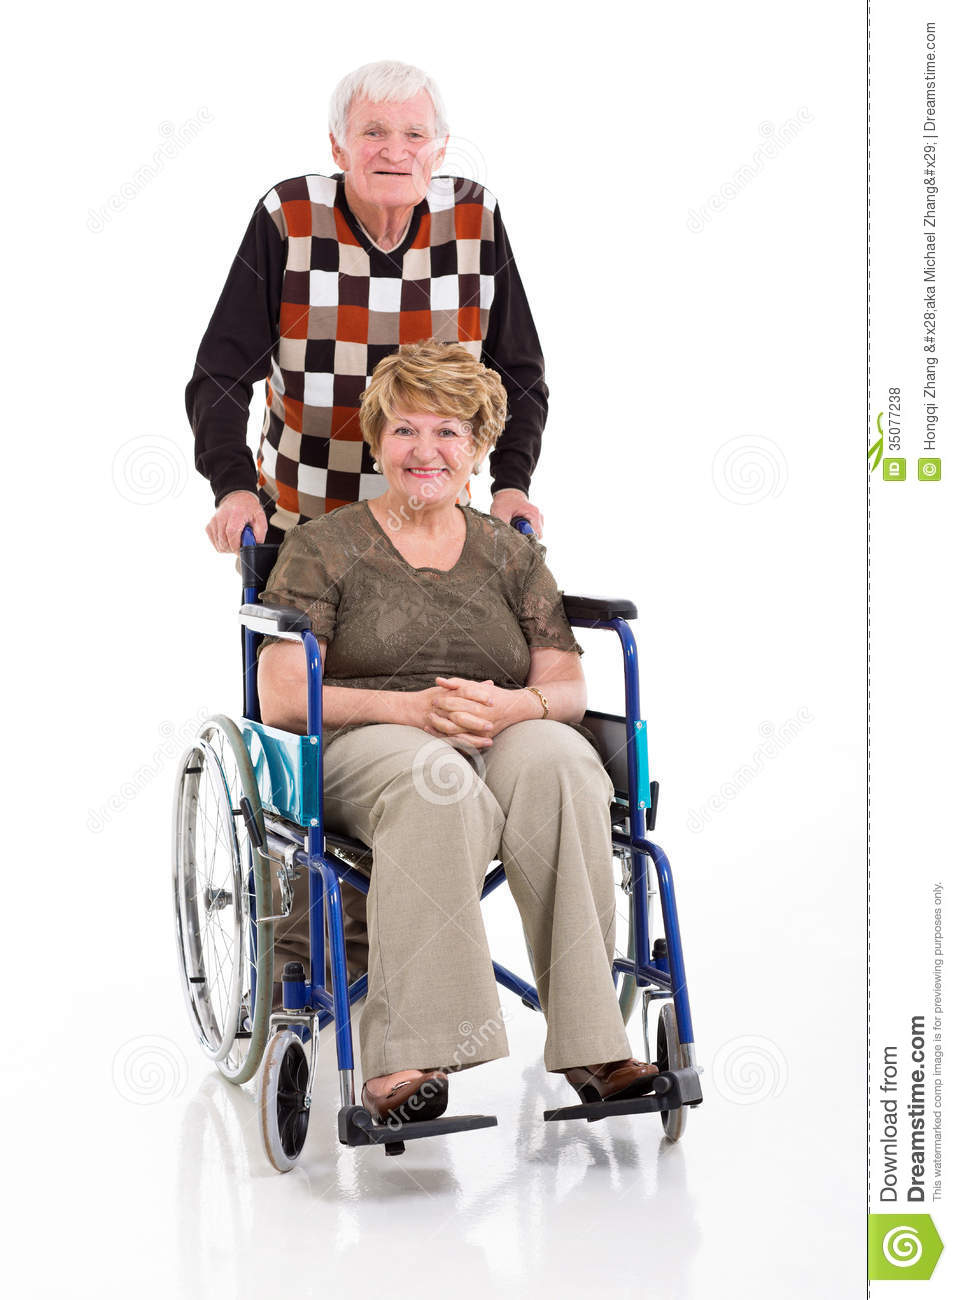 Free online dating for disabled